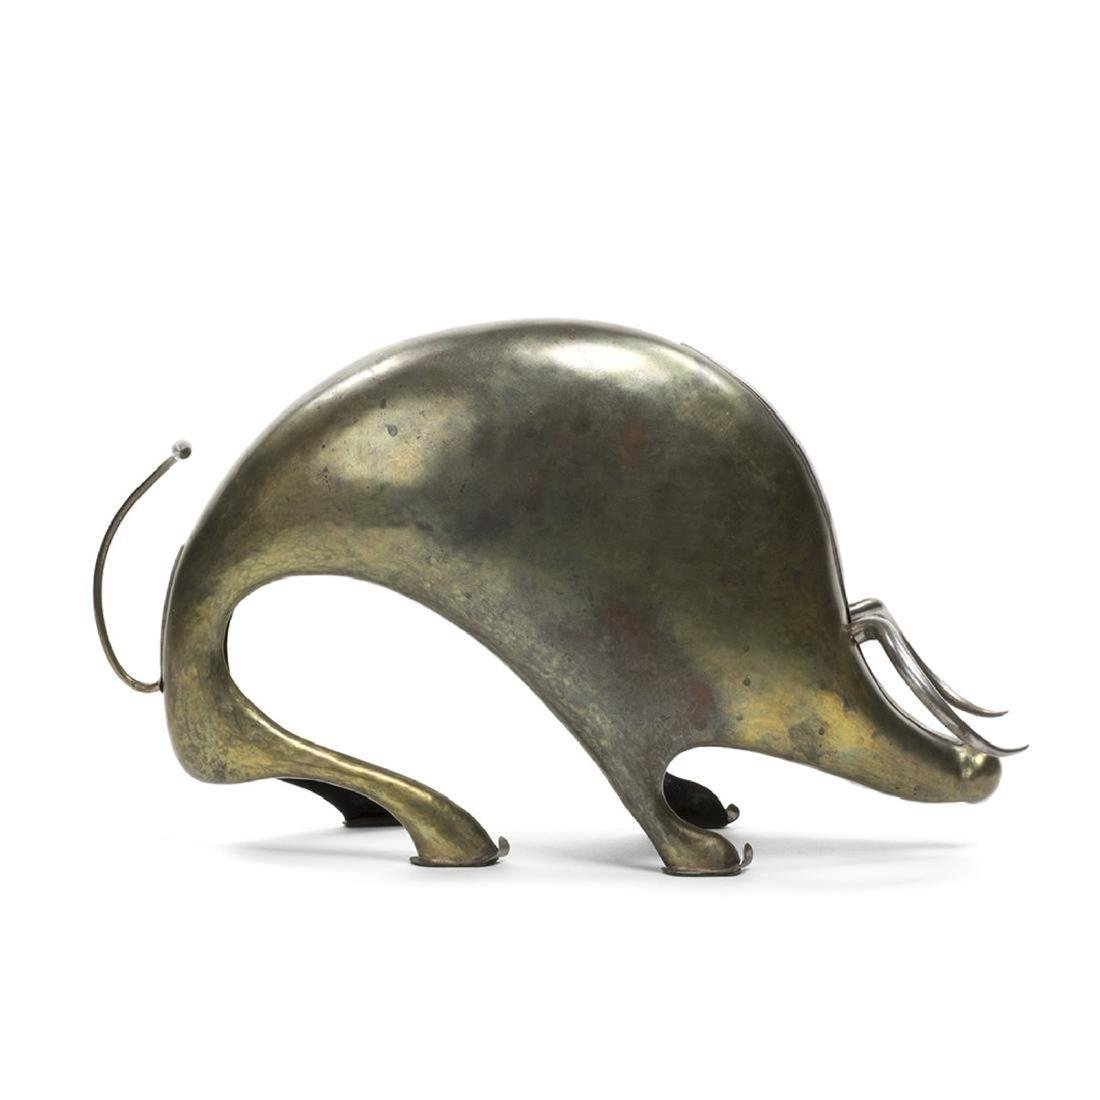 Metal Stylized Bull Sculpture - 4